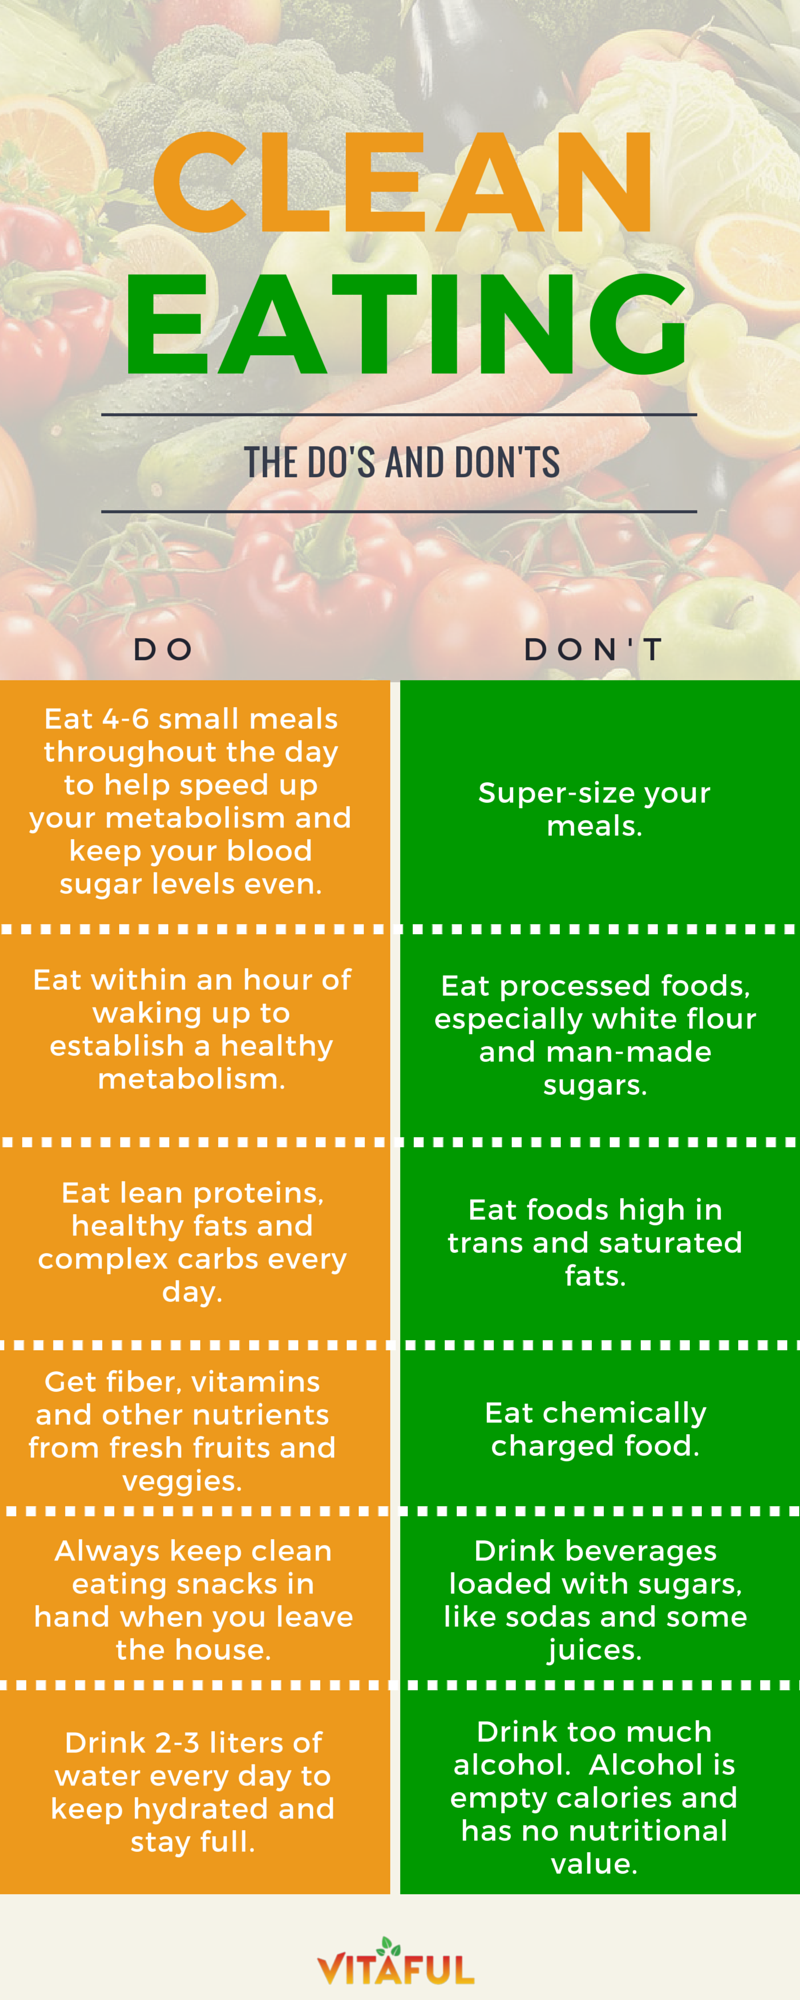 50 Clean Eating Tips for Weight Loss